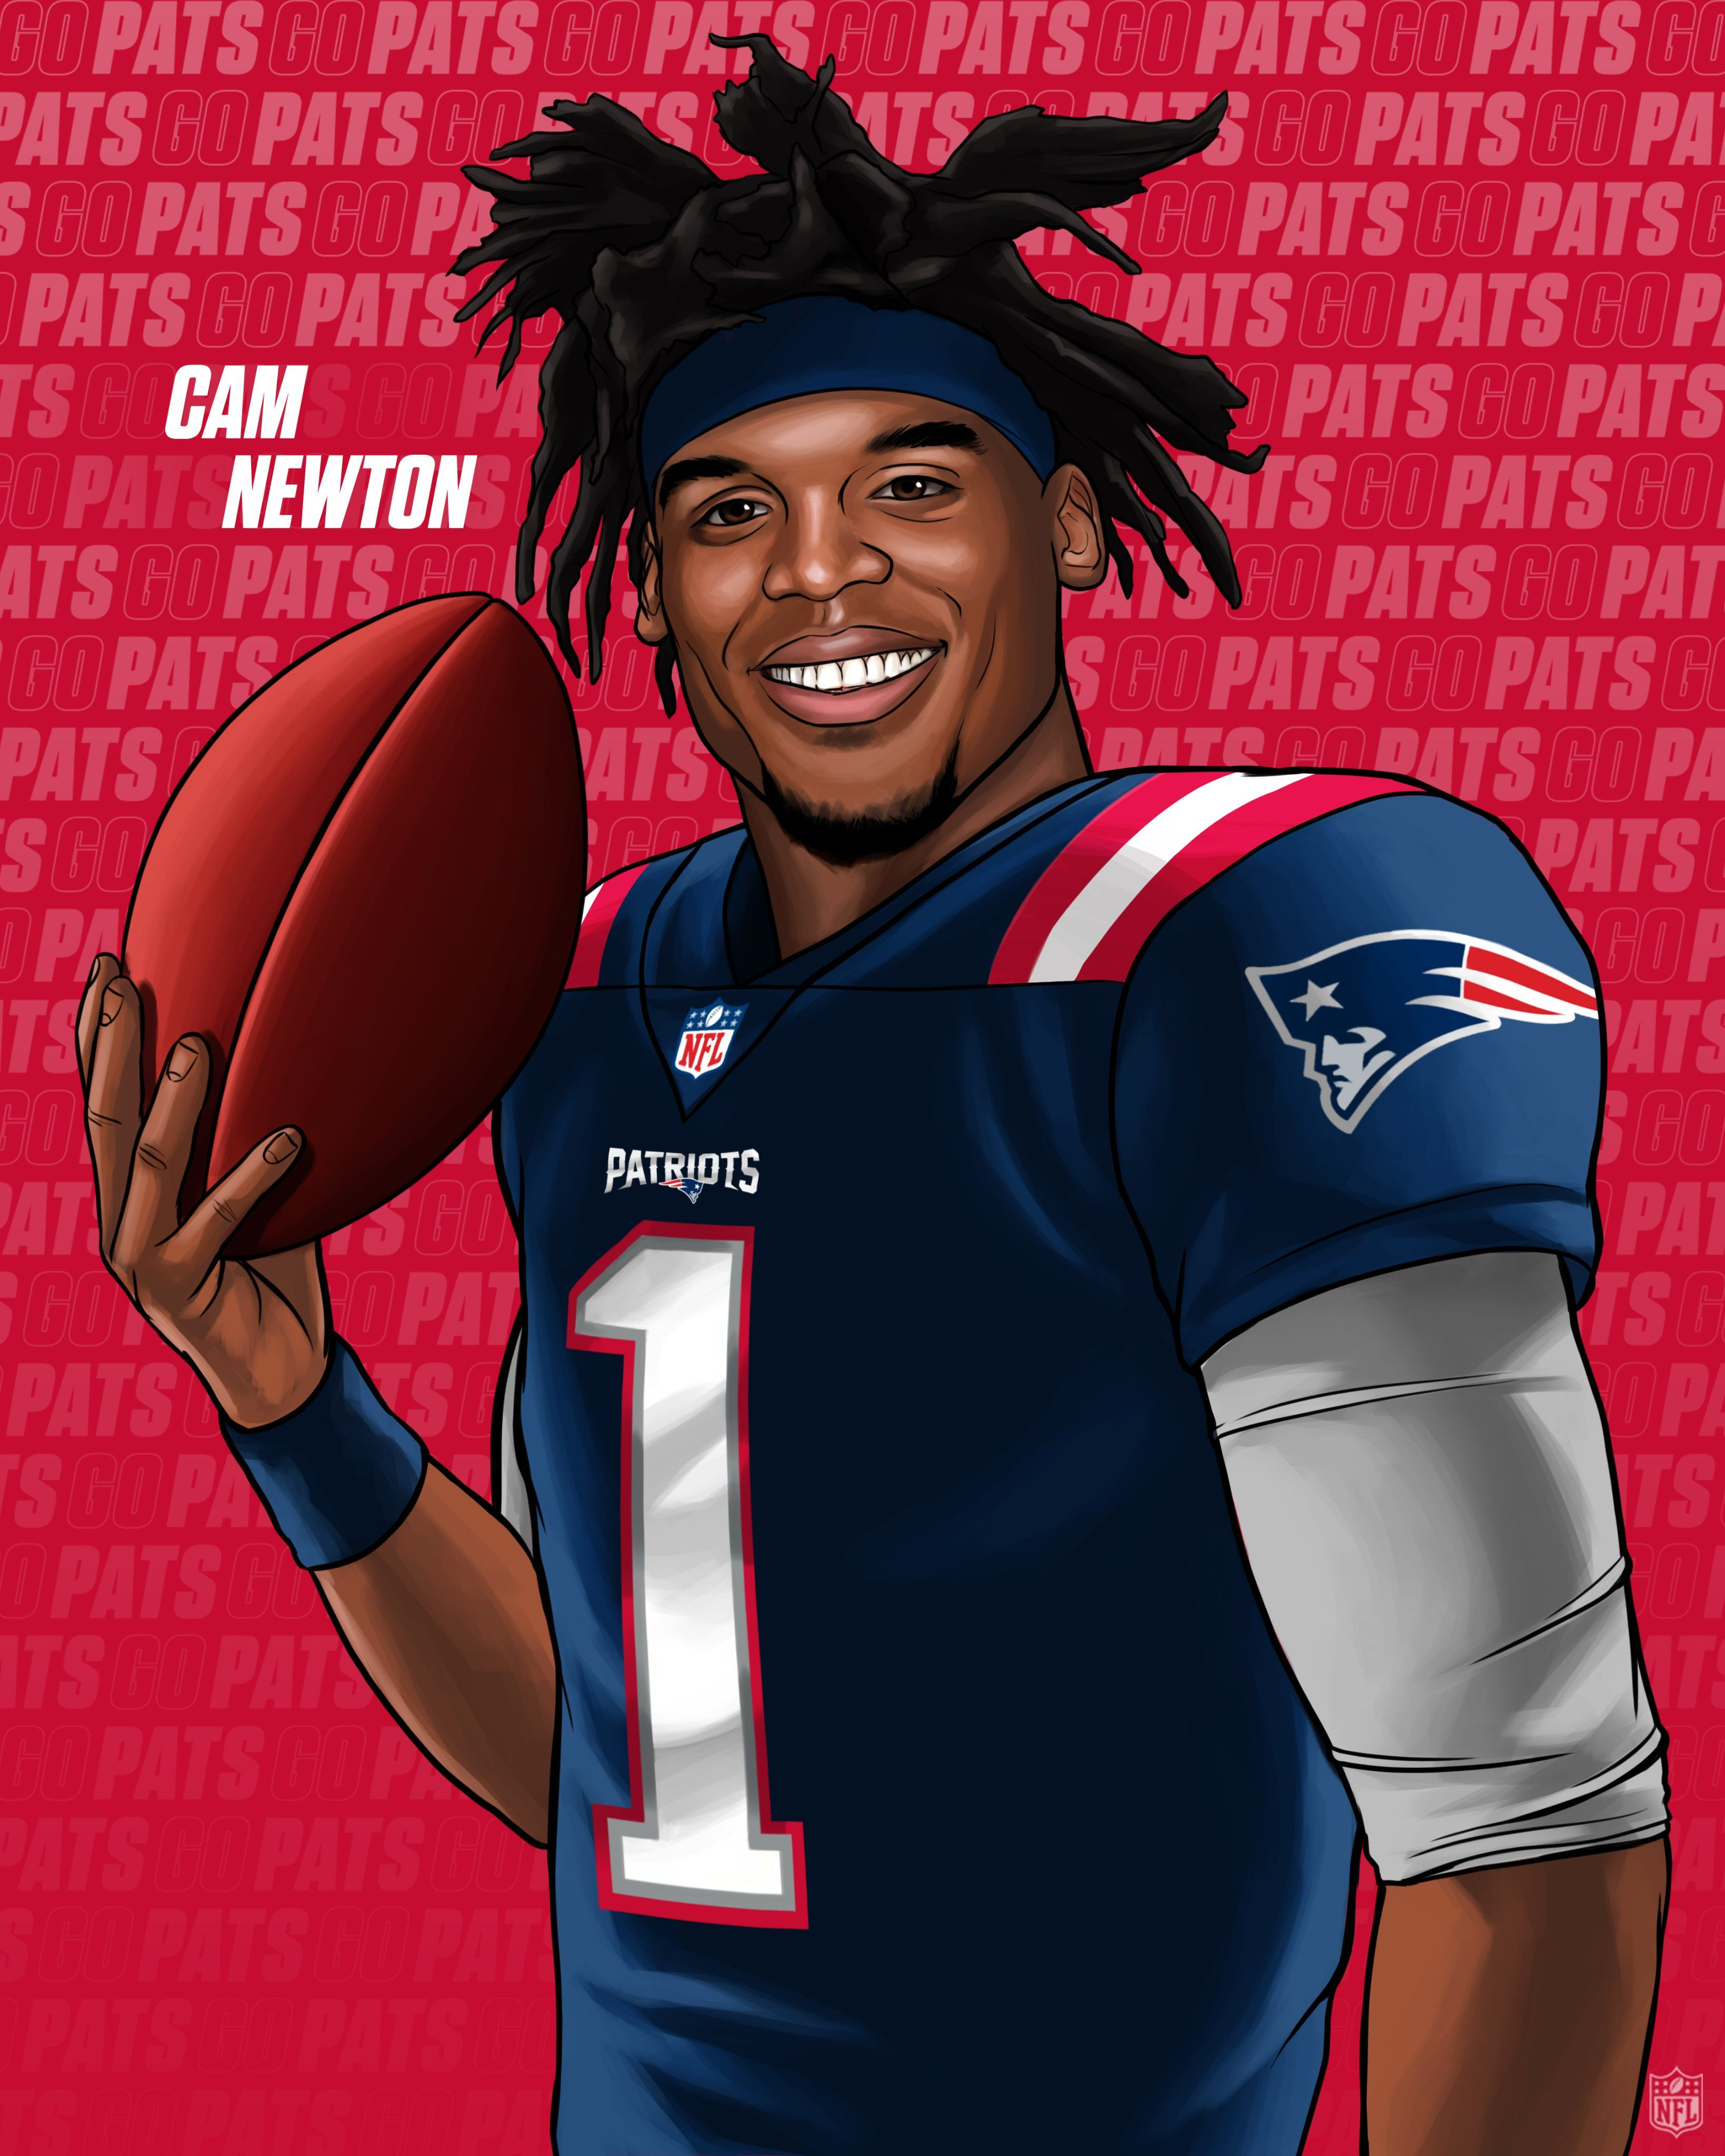 Nfl On Twitter In 2020 New England Patriots Football Nfl Football Pictures Patriots Football